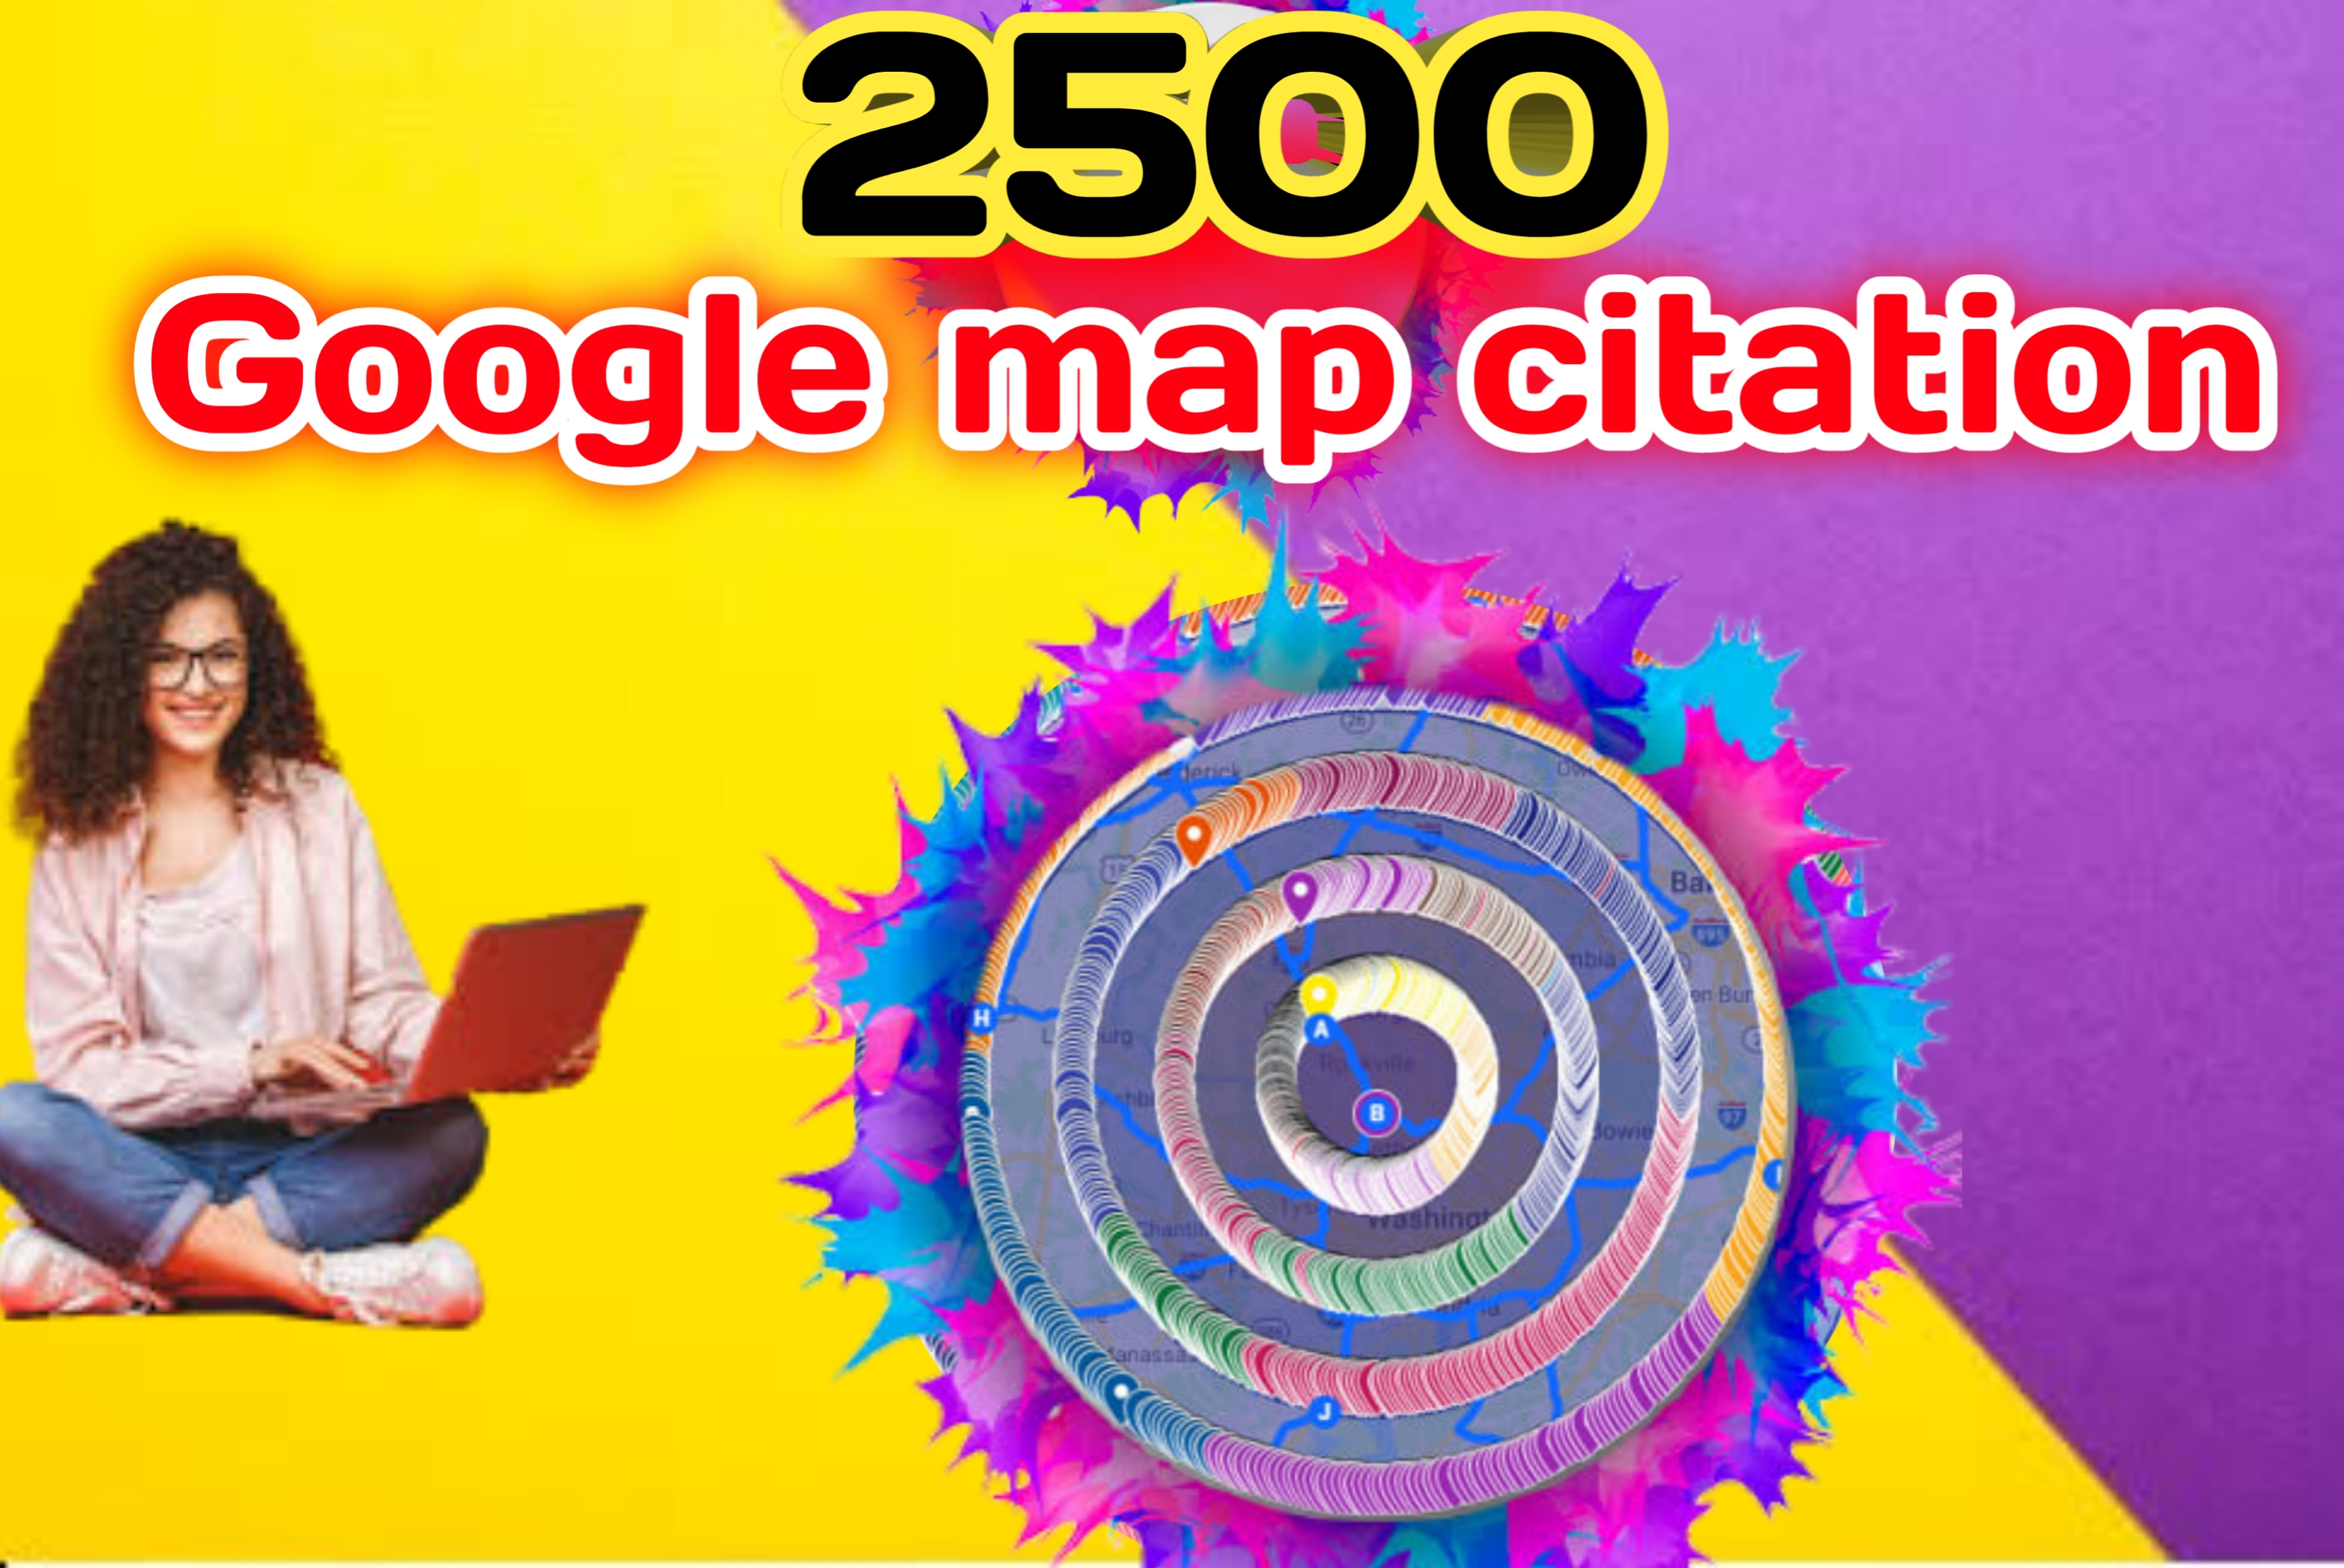 I will do 2500 google map citation for your business